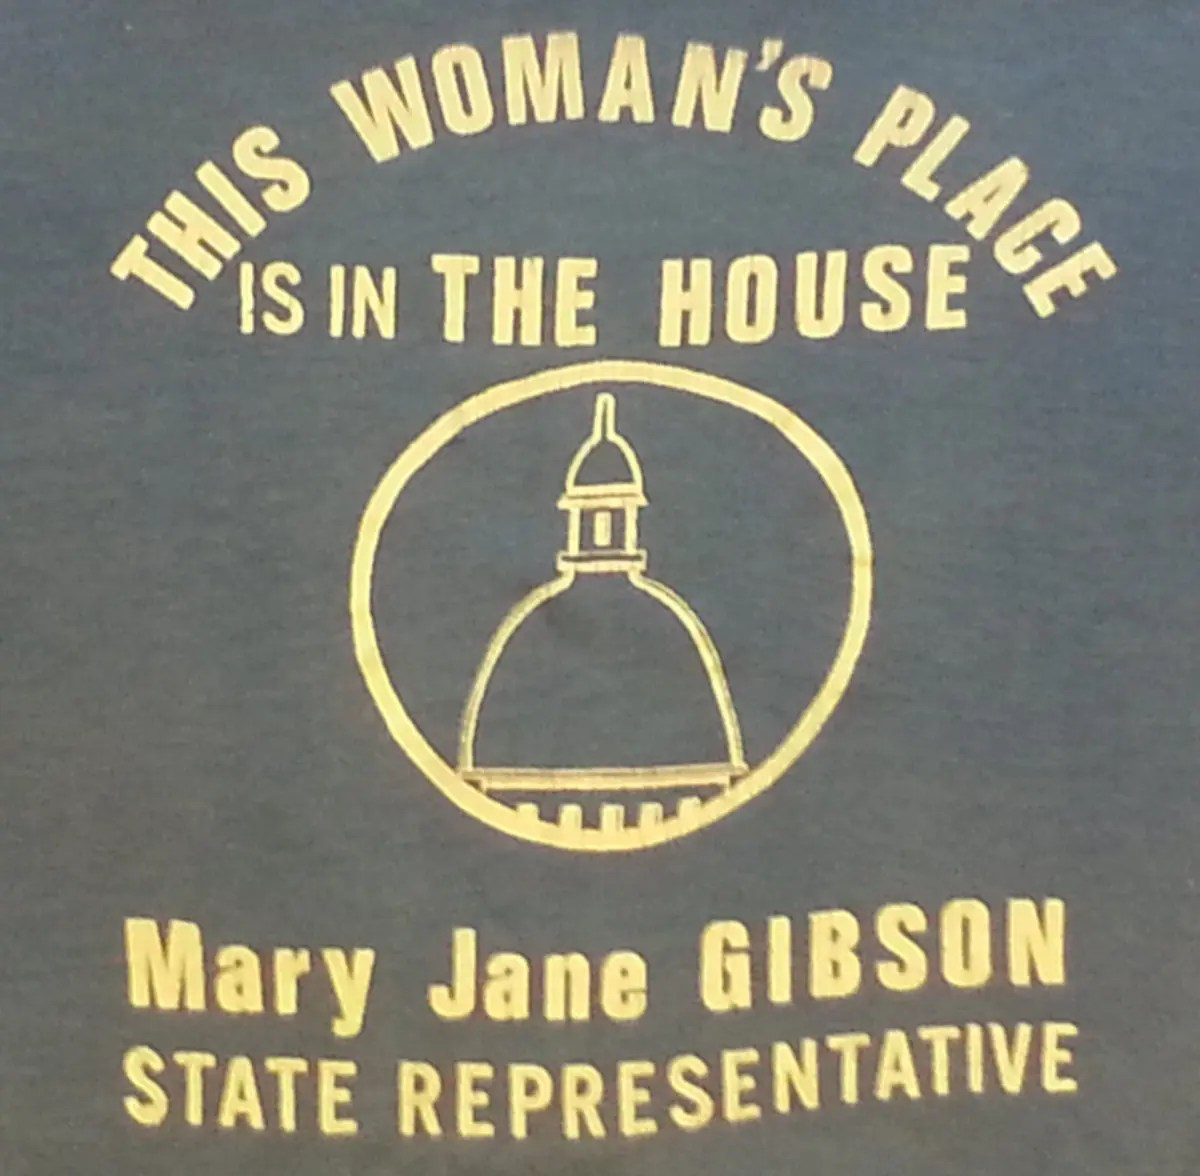 A woman place is in the home essay